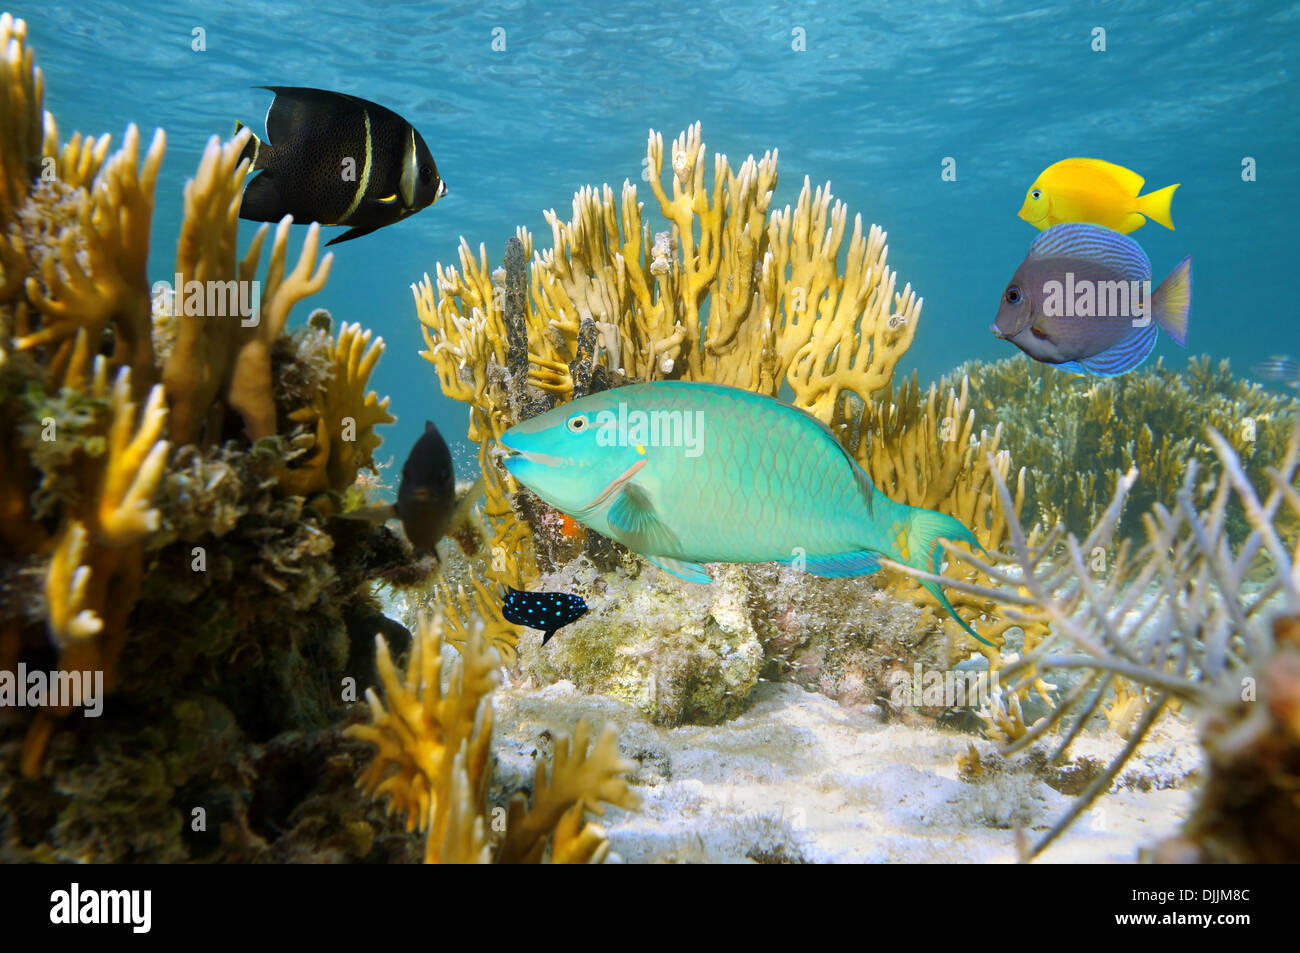 undersea scene with colorful tropical fish in a coral reef